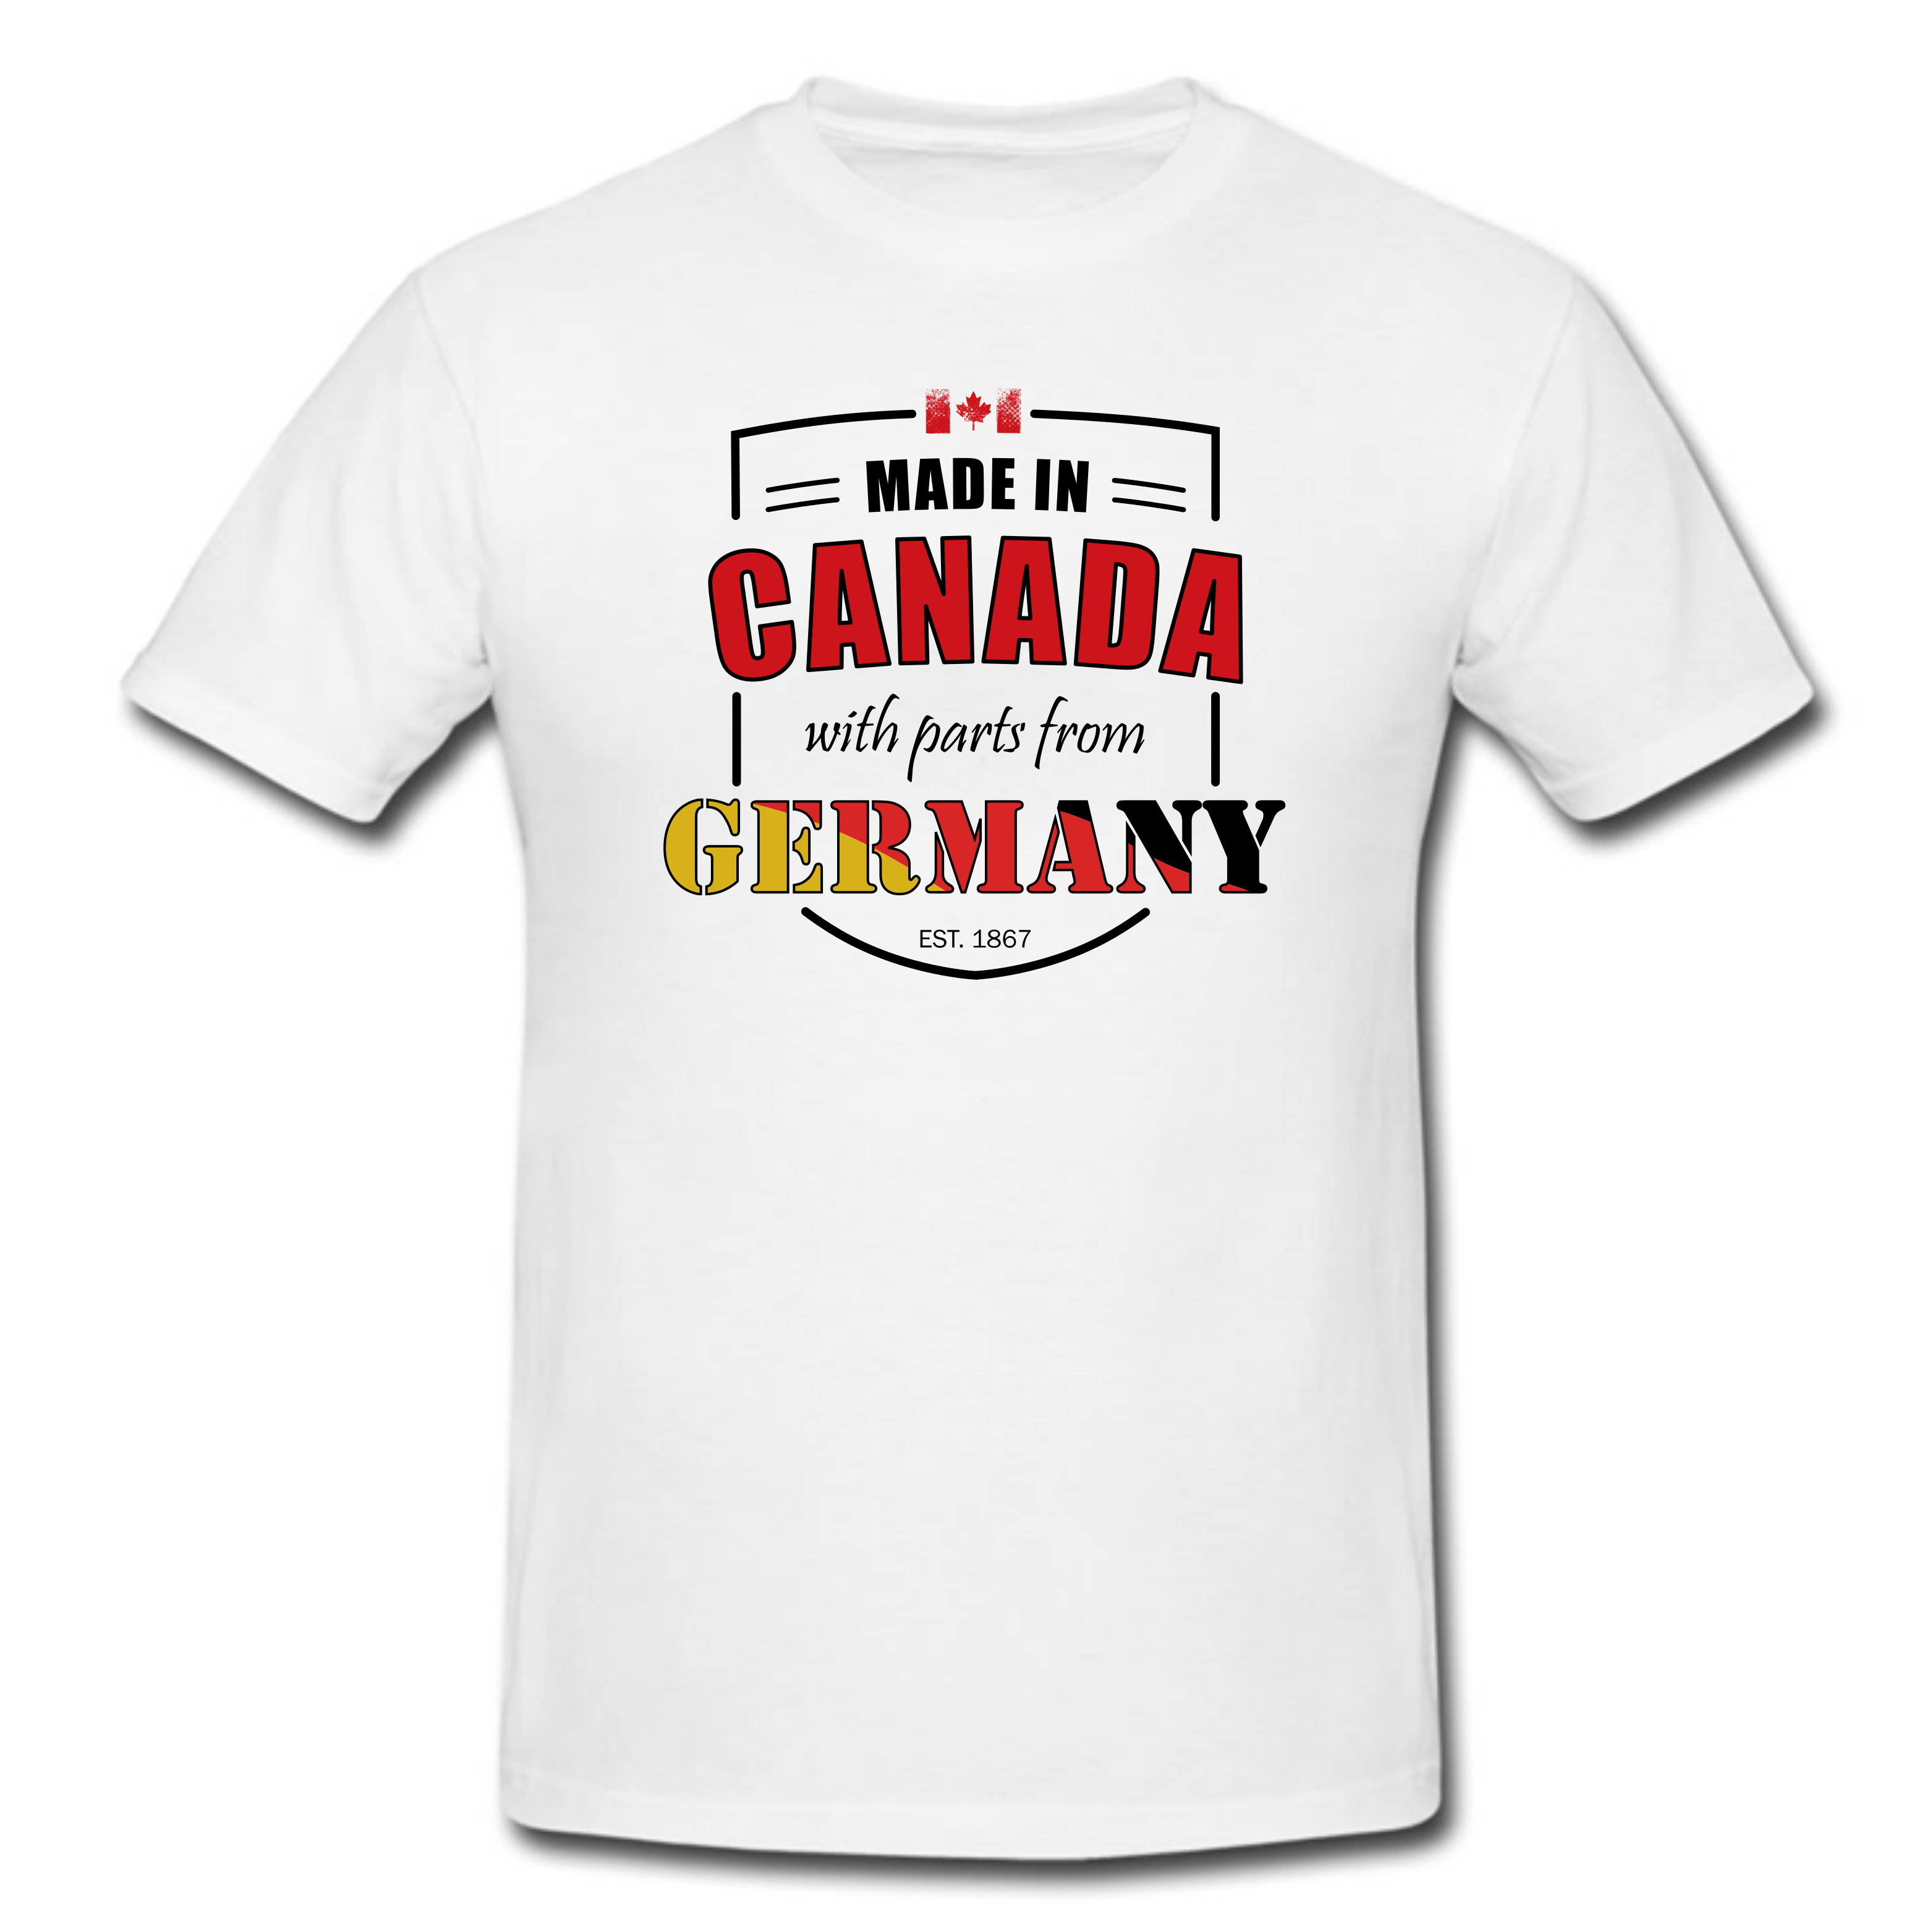 Made in Canada with parts from Germany T Shirt